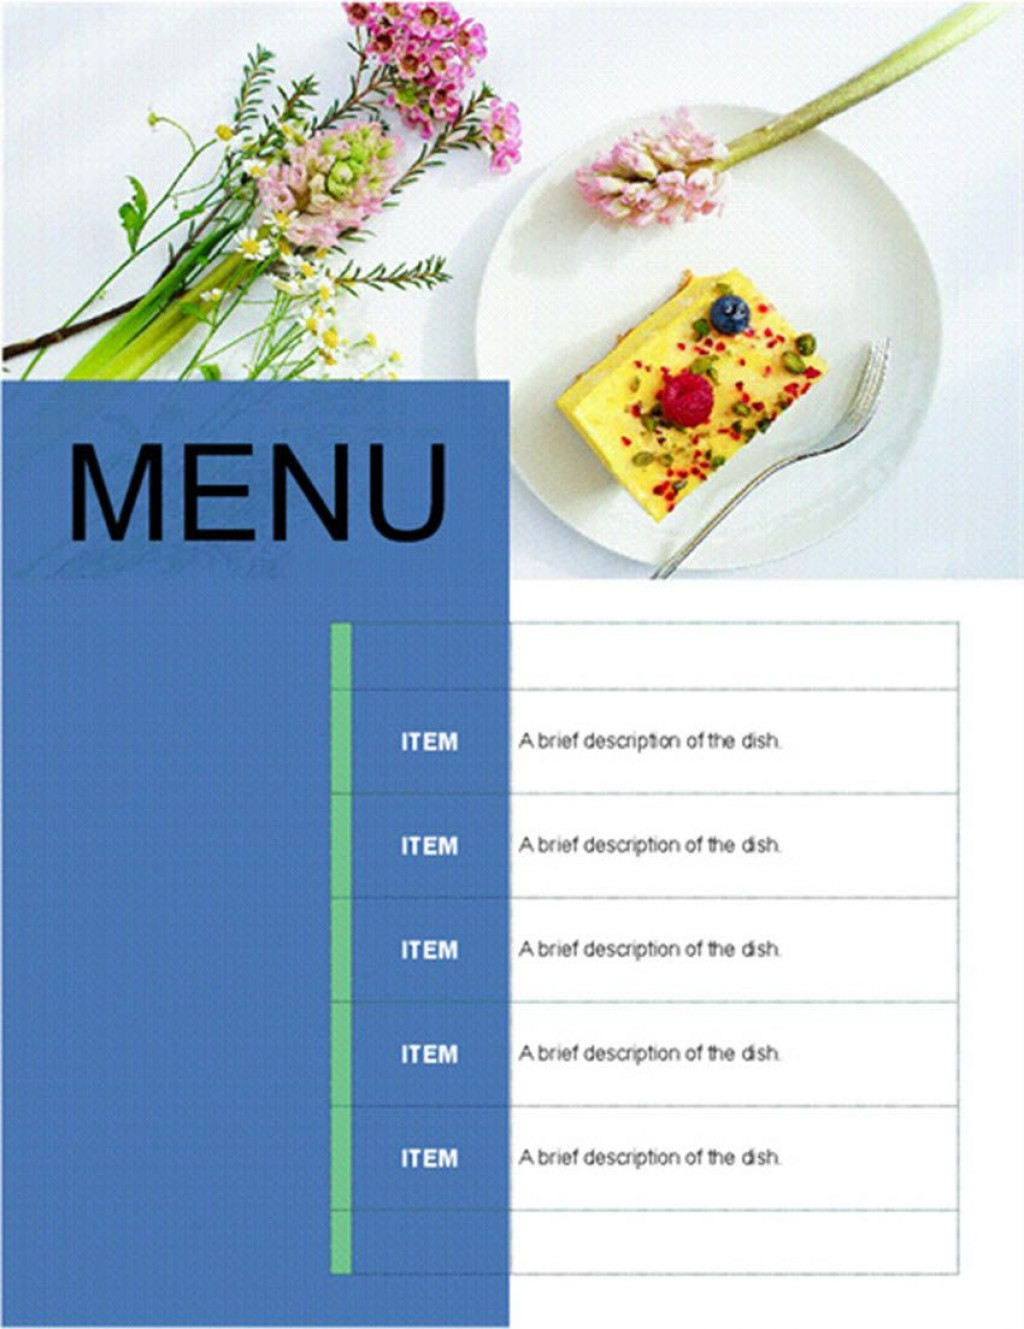 005 Awesome Food Menu Card Template Free Download Inspiration Large